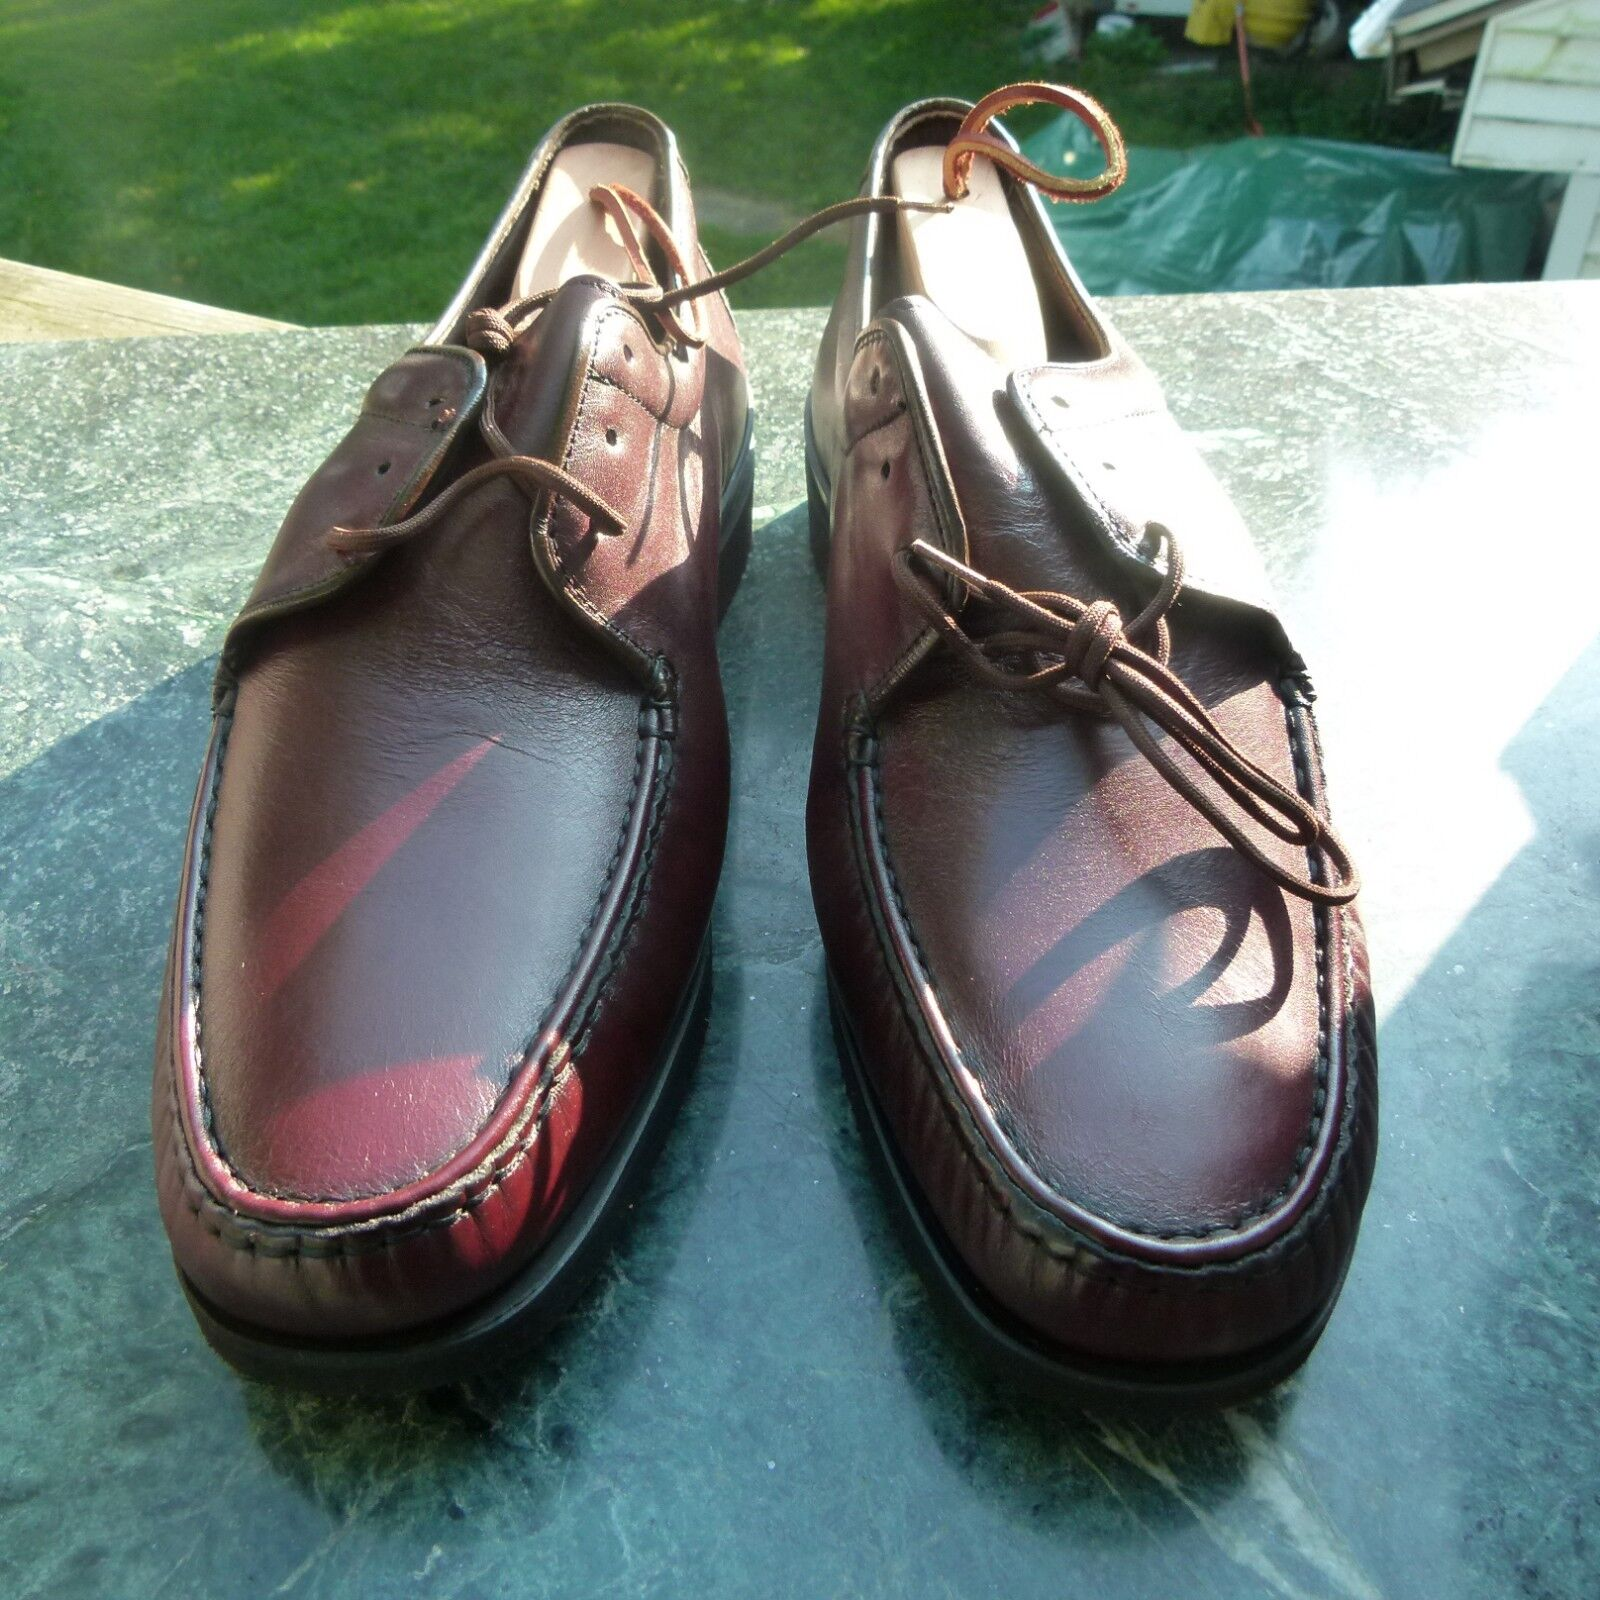 Vintage WRIGHT Hand Sewn Leather shoes E74 Size 10 1 2 B Burg. New in Box